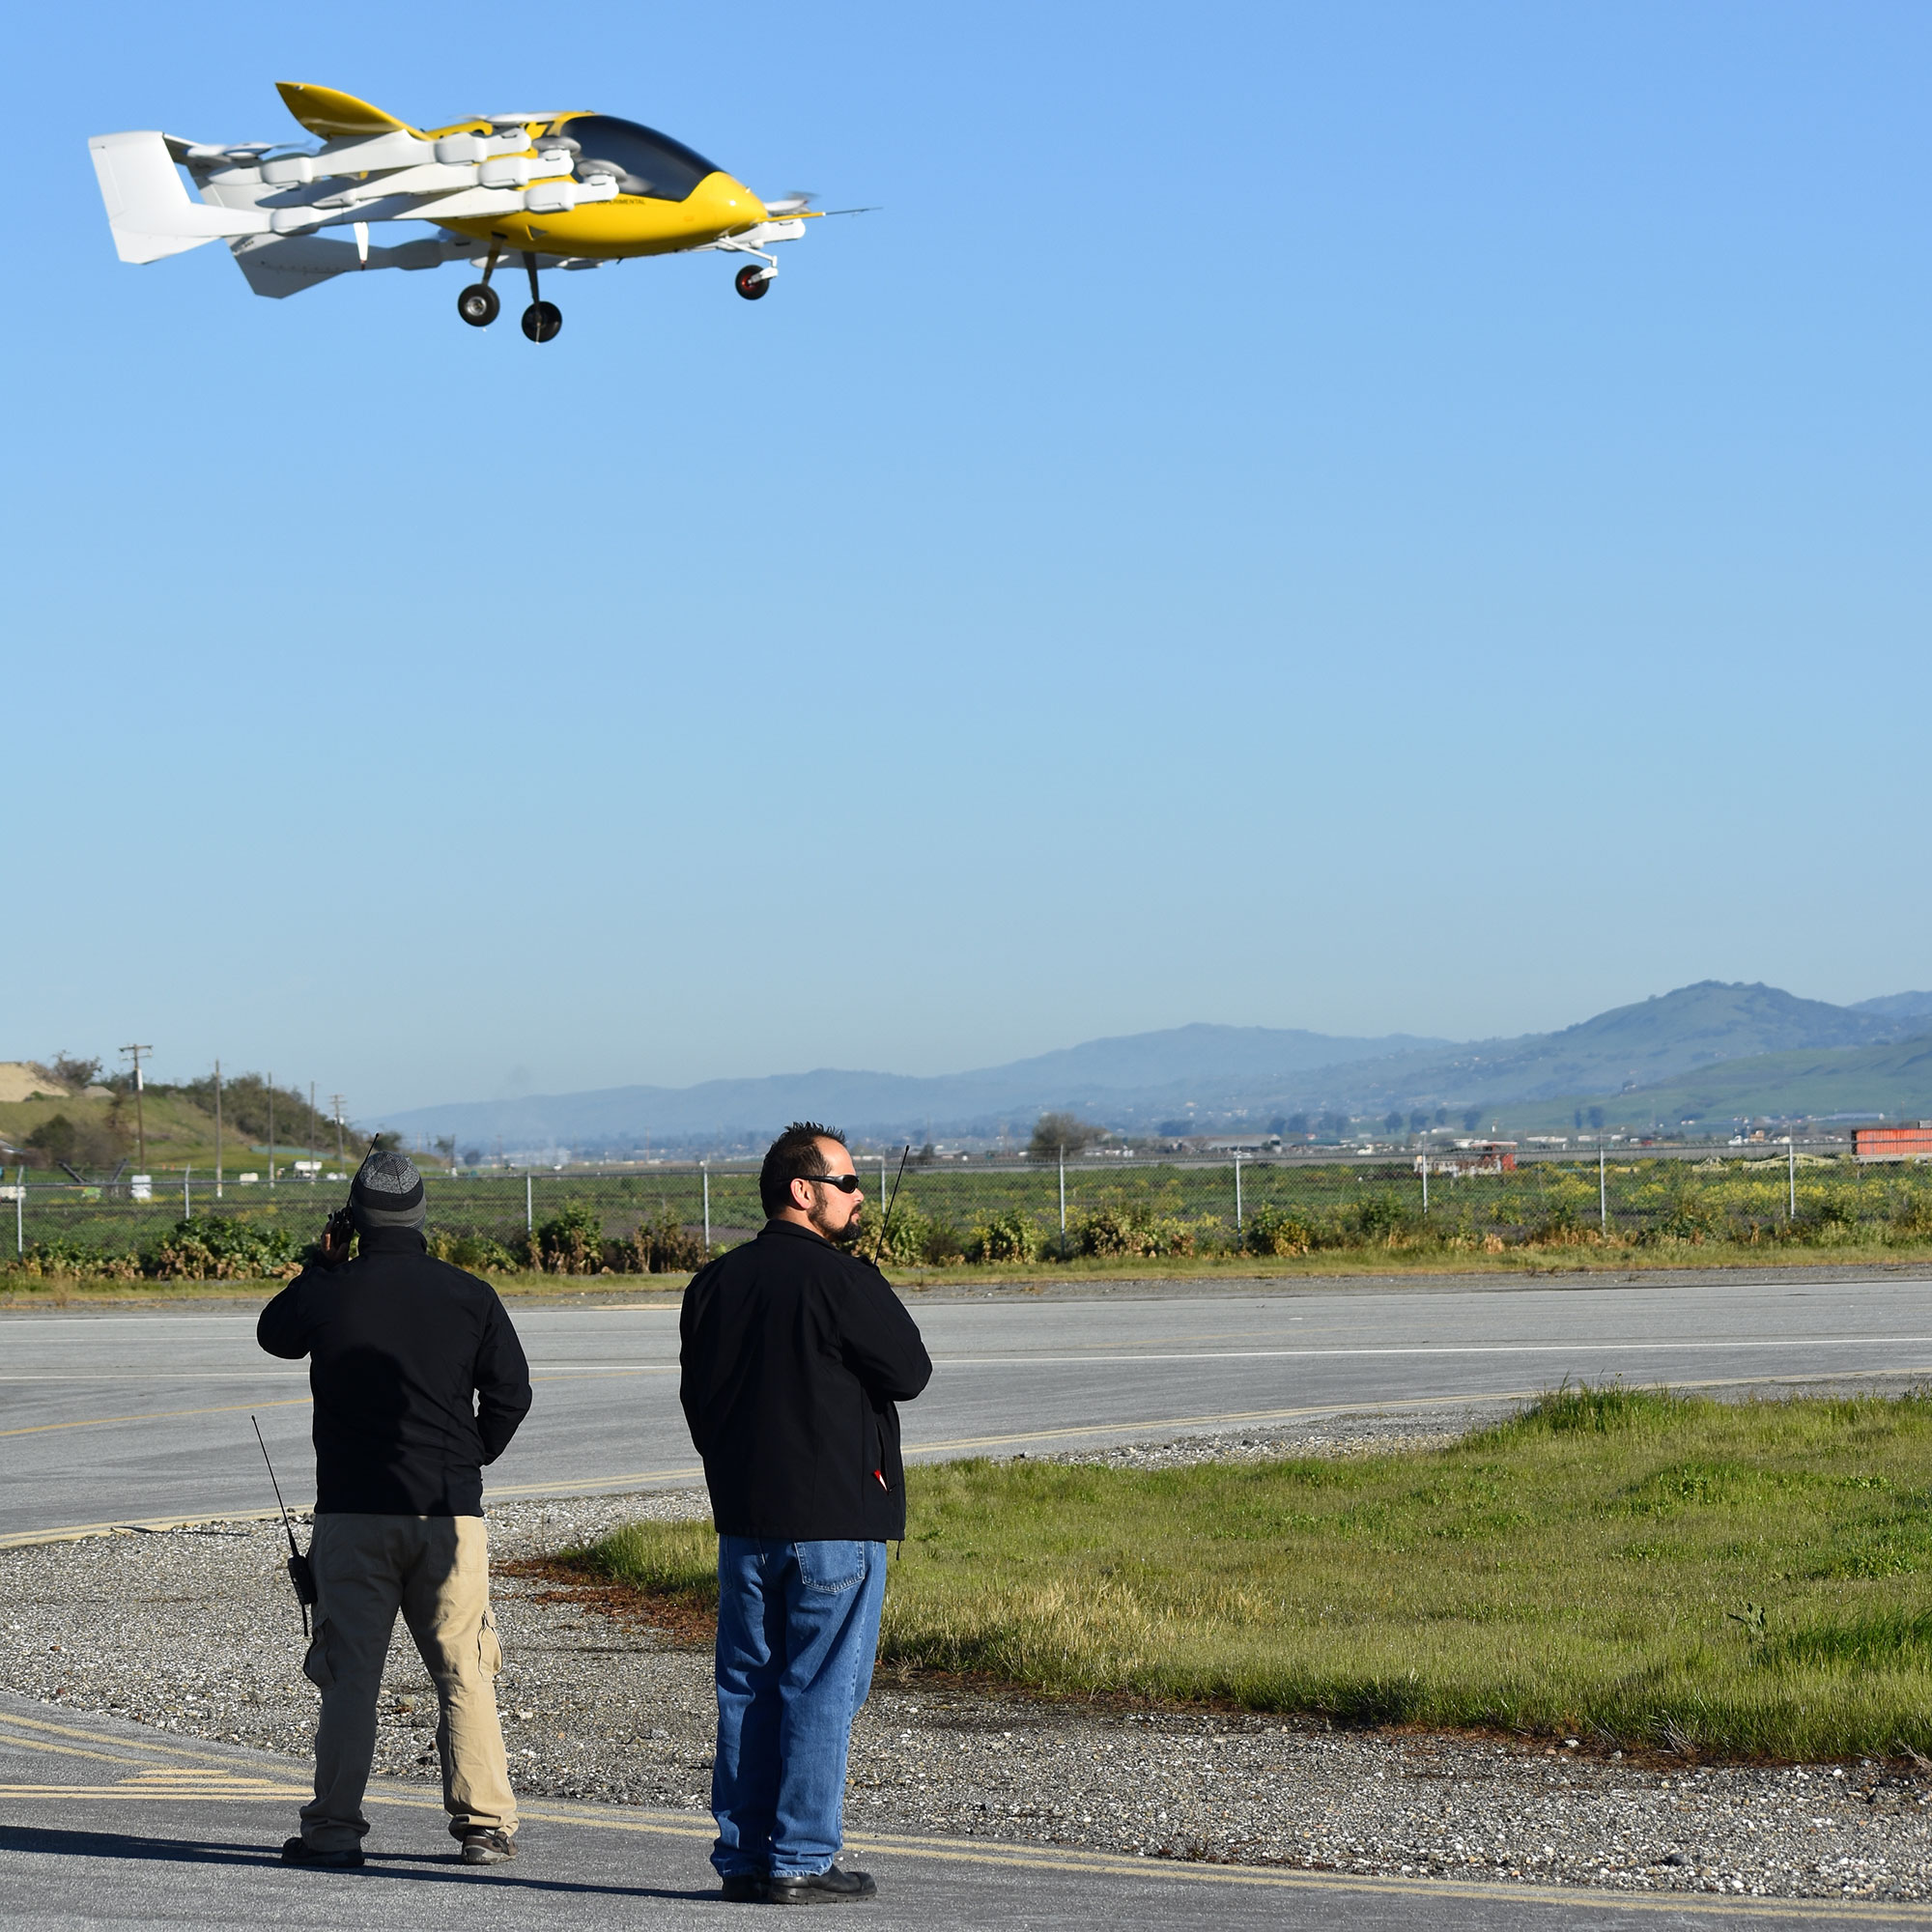 Ground crew monitors Cora during hover flight test